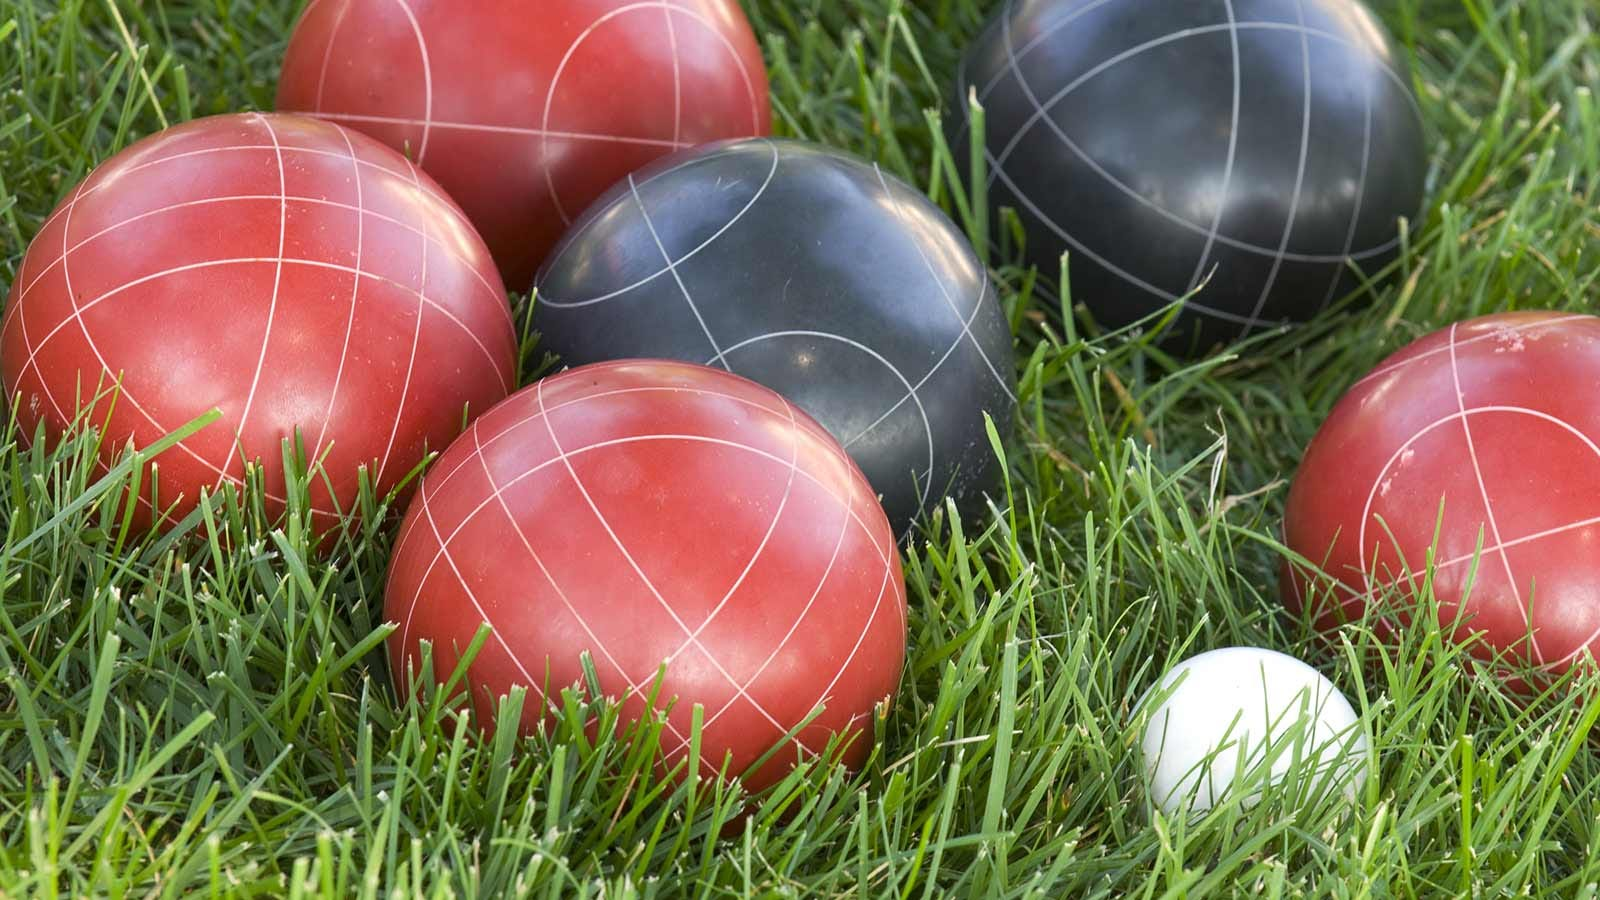 Bocce balls resting on green grass.